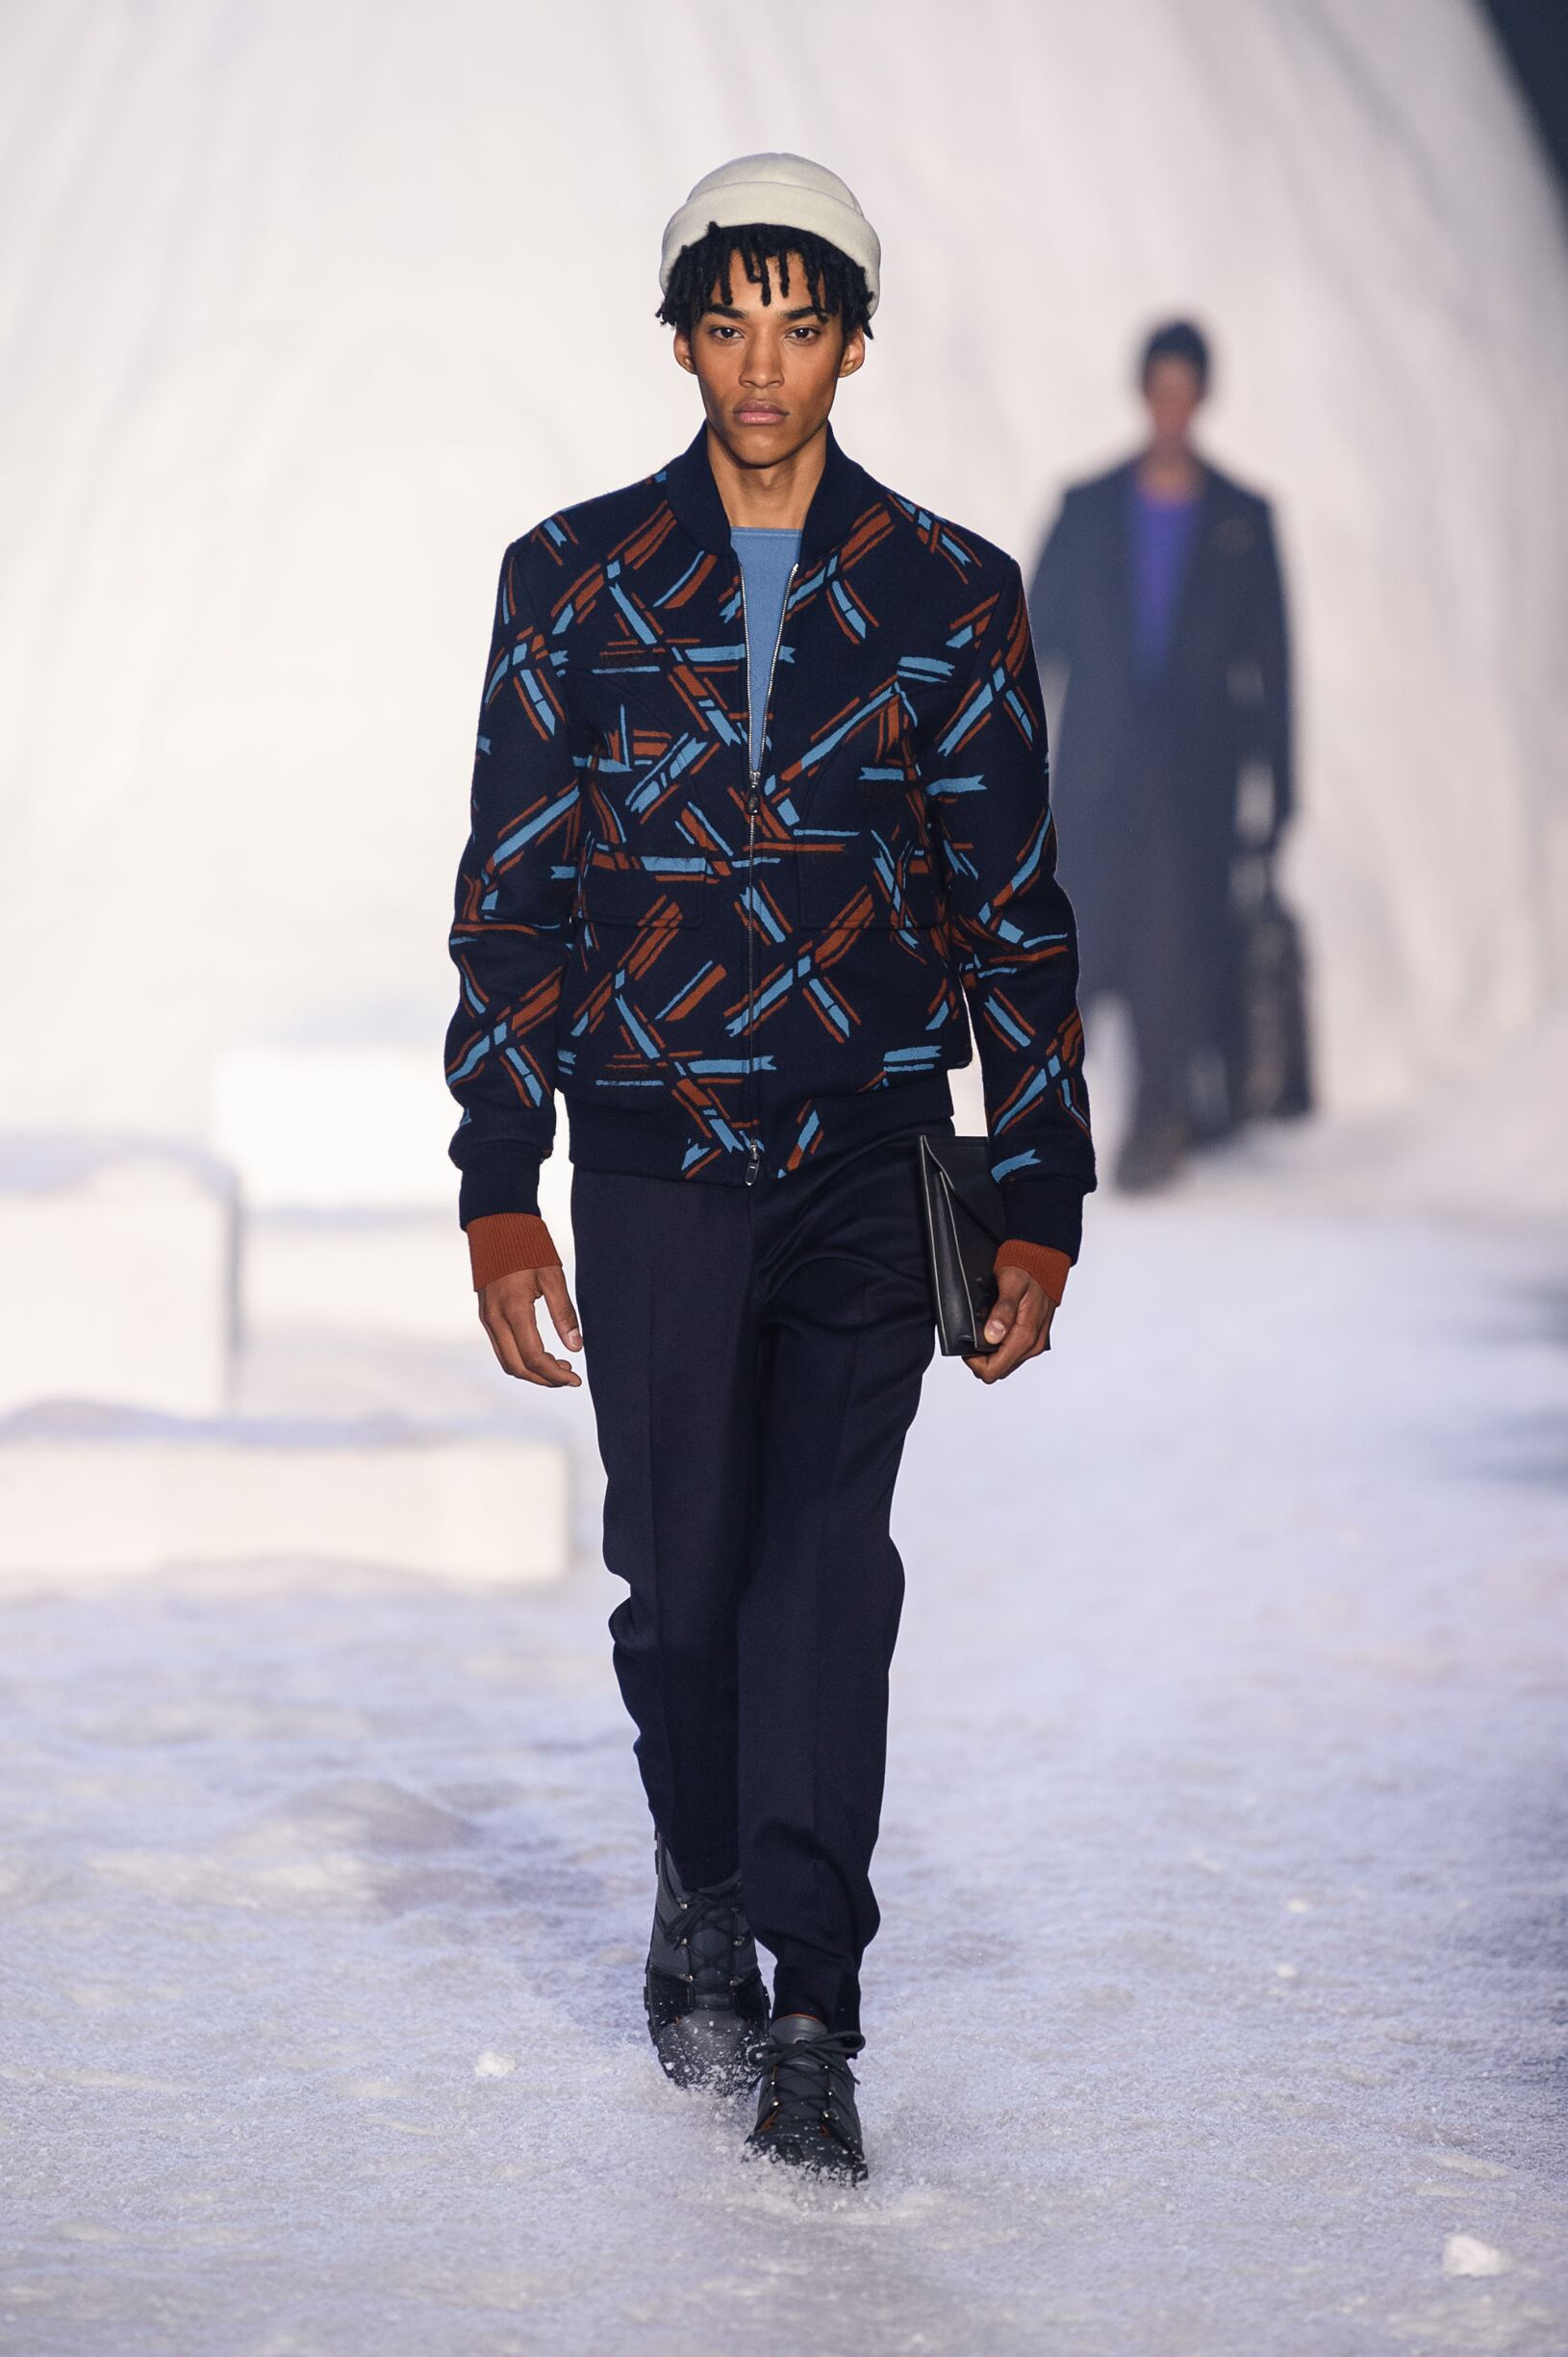 Catwalk Ermenegildo Zegna Couture Man Fashion Show Winter 2018